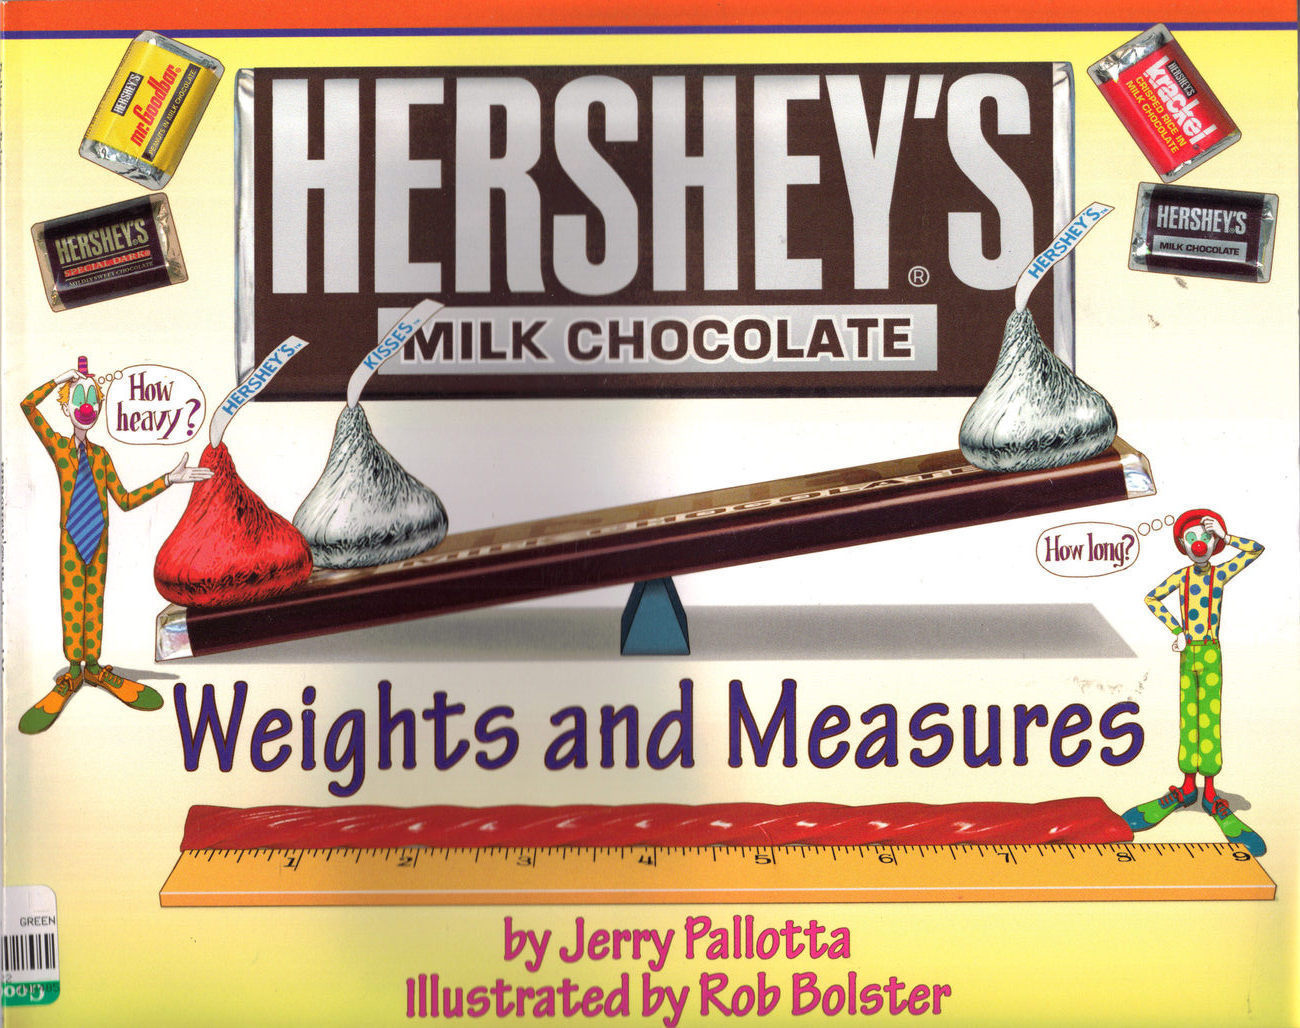 Hershey's Milk Chocolate Weights and Measures